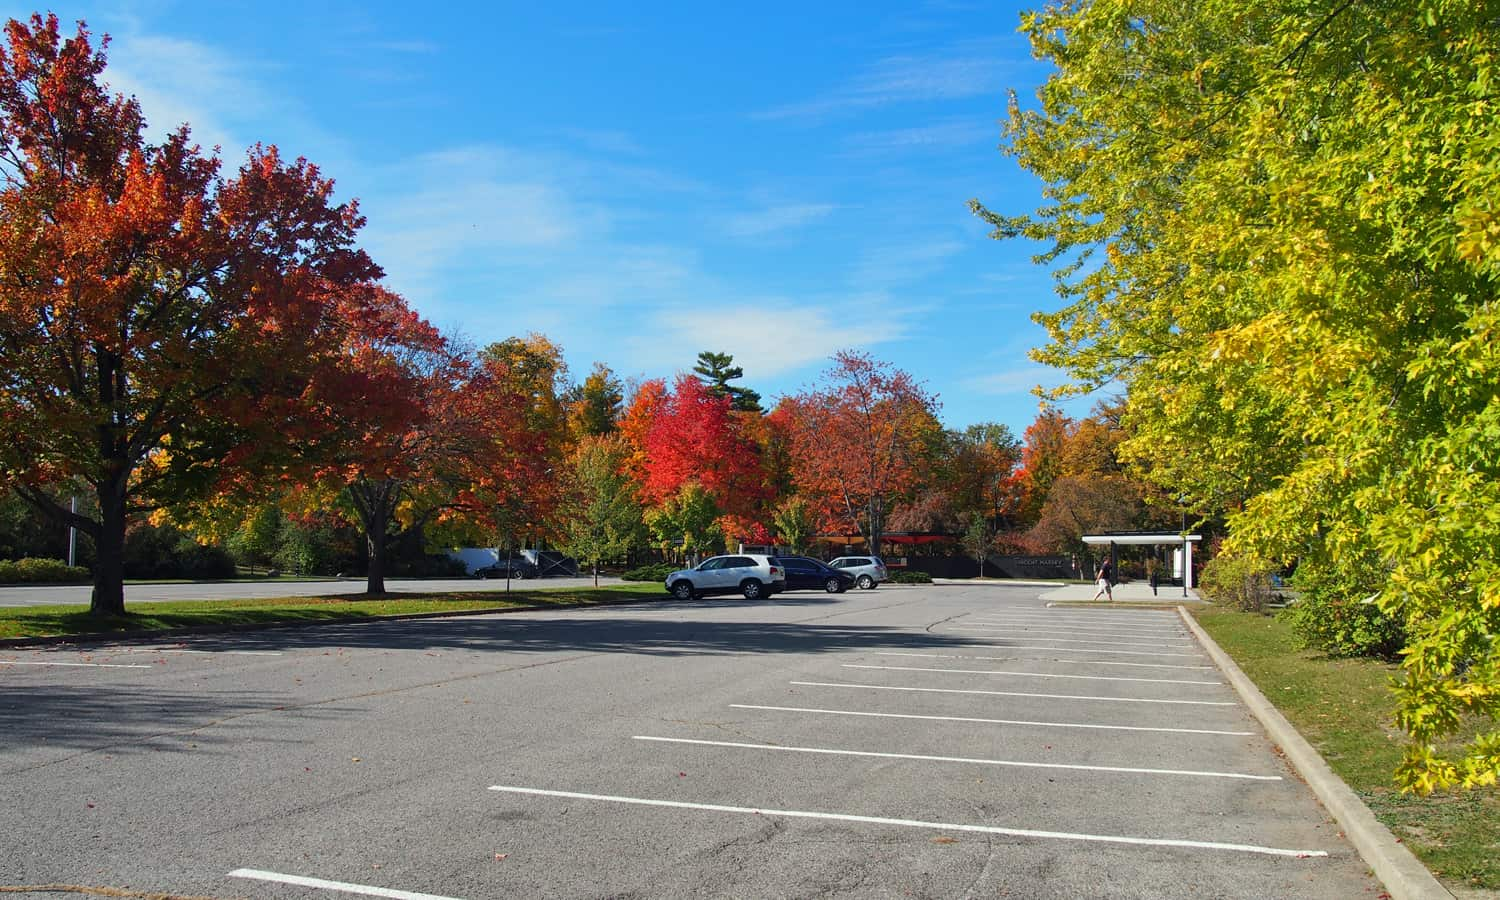 Parking lot with a central row of trees